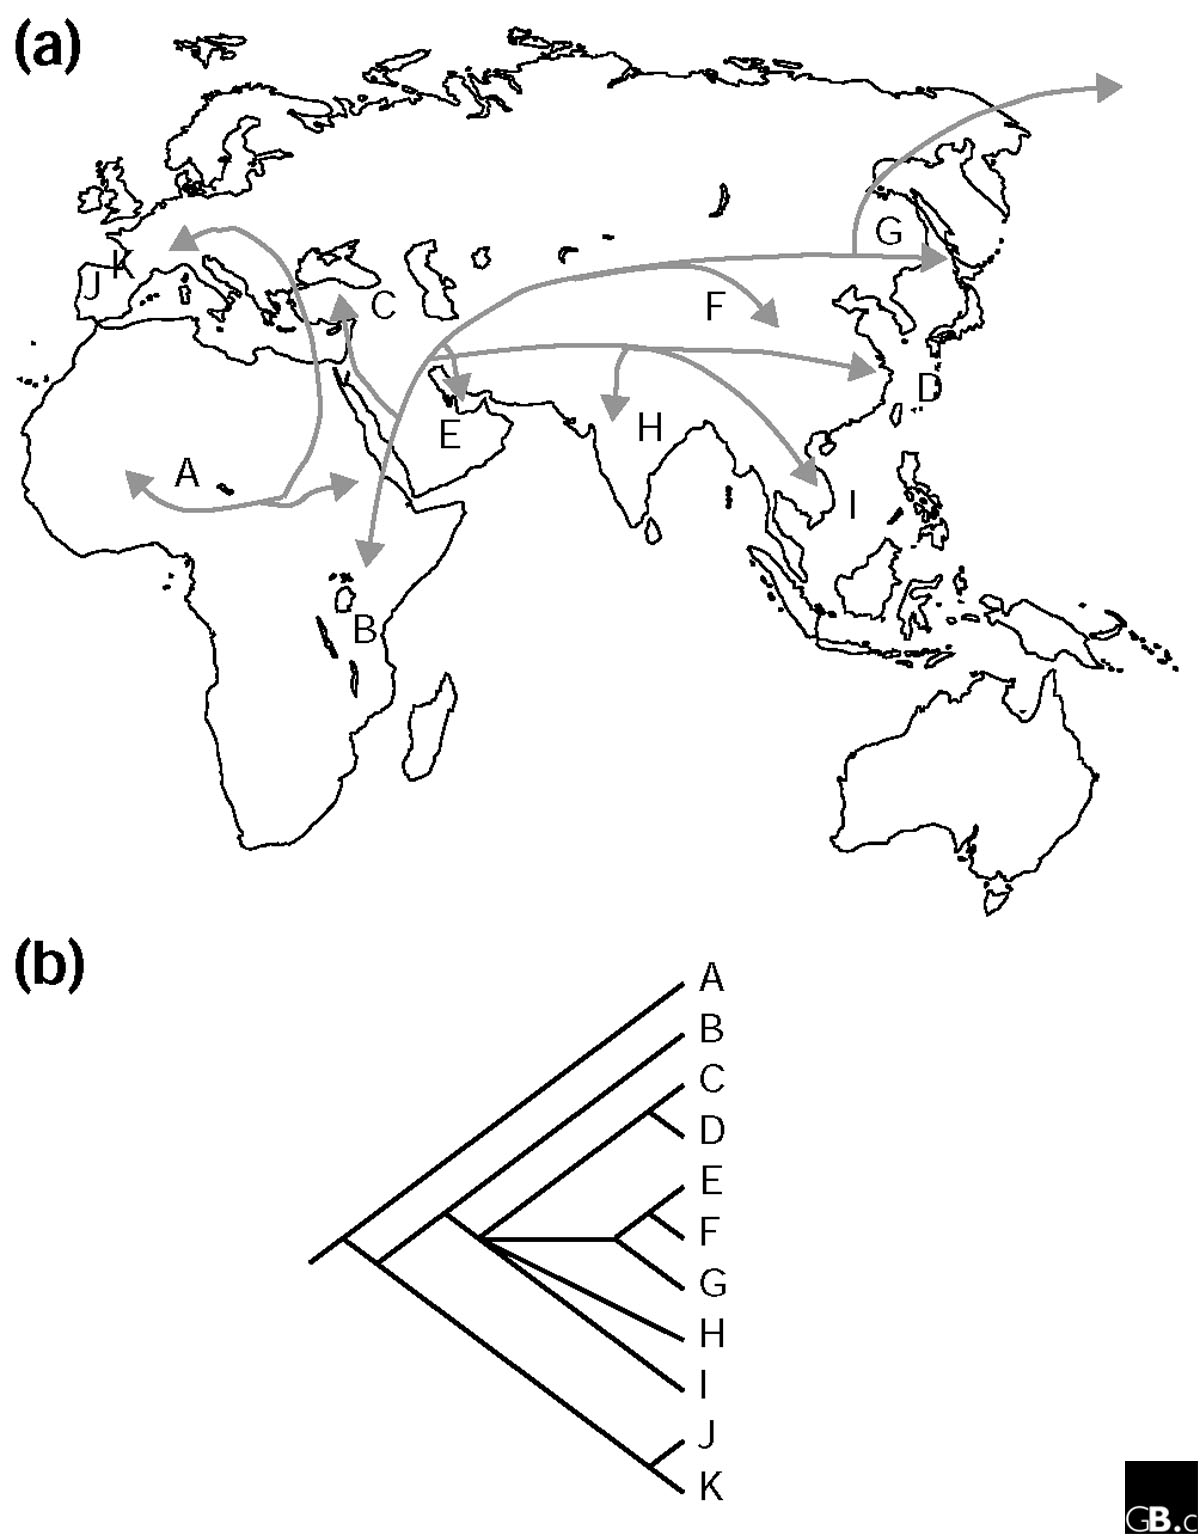 http://static-content.springer.com/image/art%3A10.1186%2Fgb-2003-4-5-213/MediaObjects/13059_2003_Article_627_Fig3_HTML.jpg